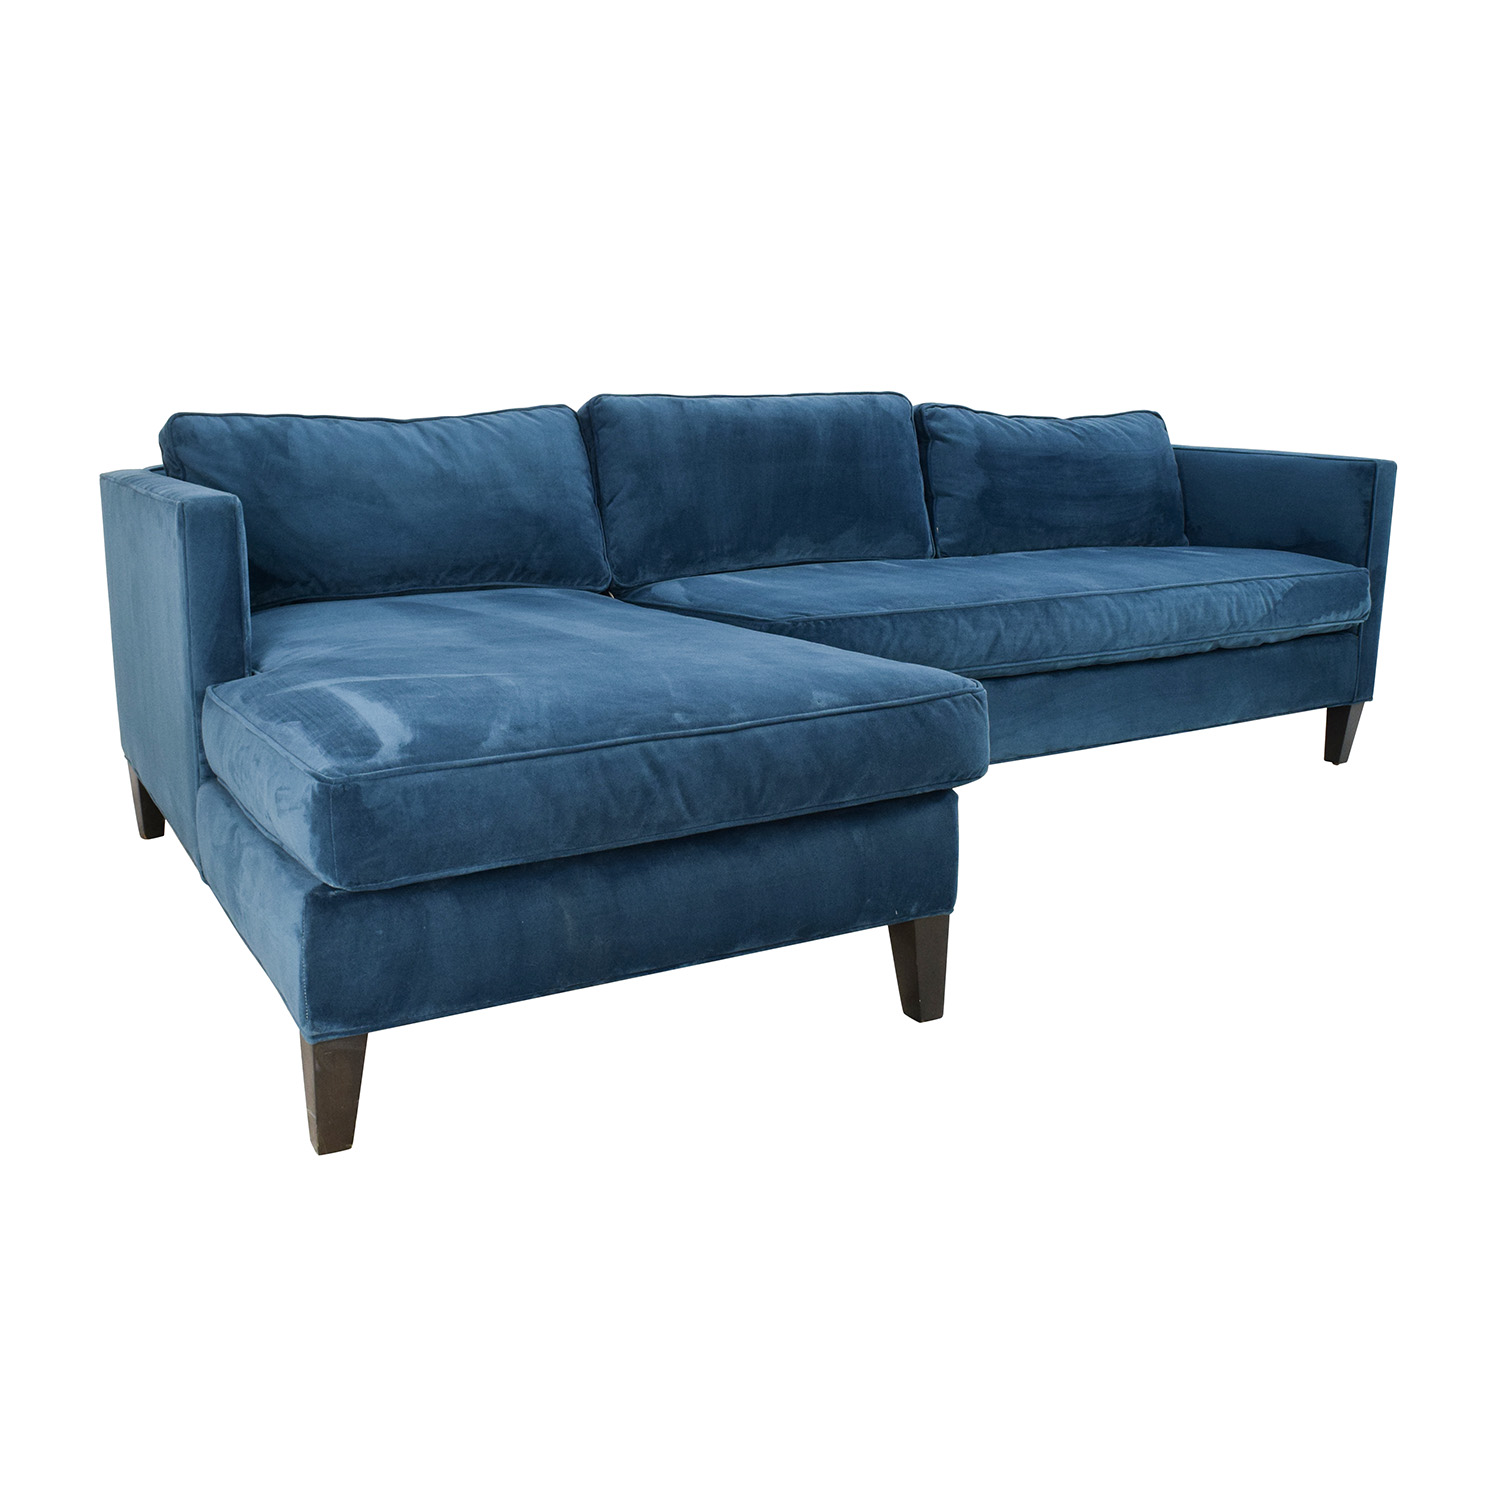 dunham sofa craigslist dallas by owner 67 off west elm sectional sofas